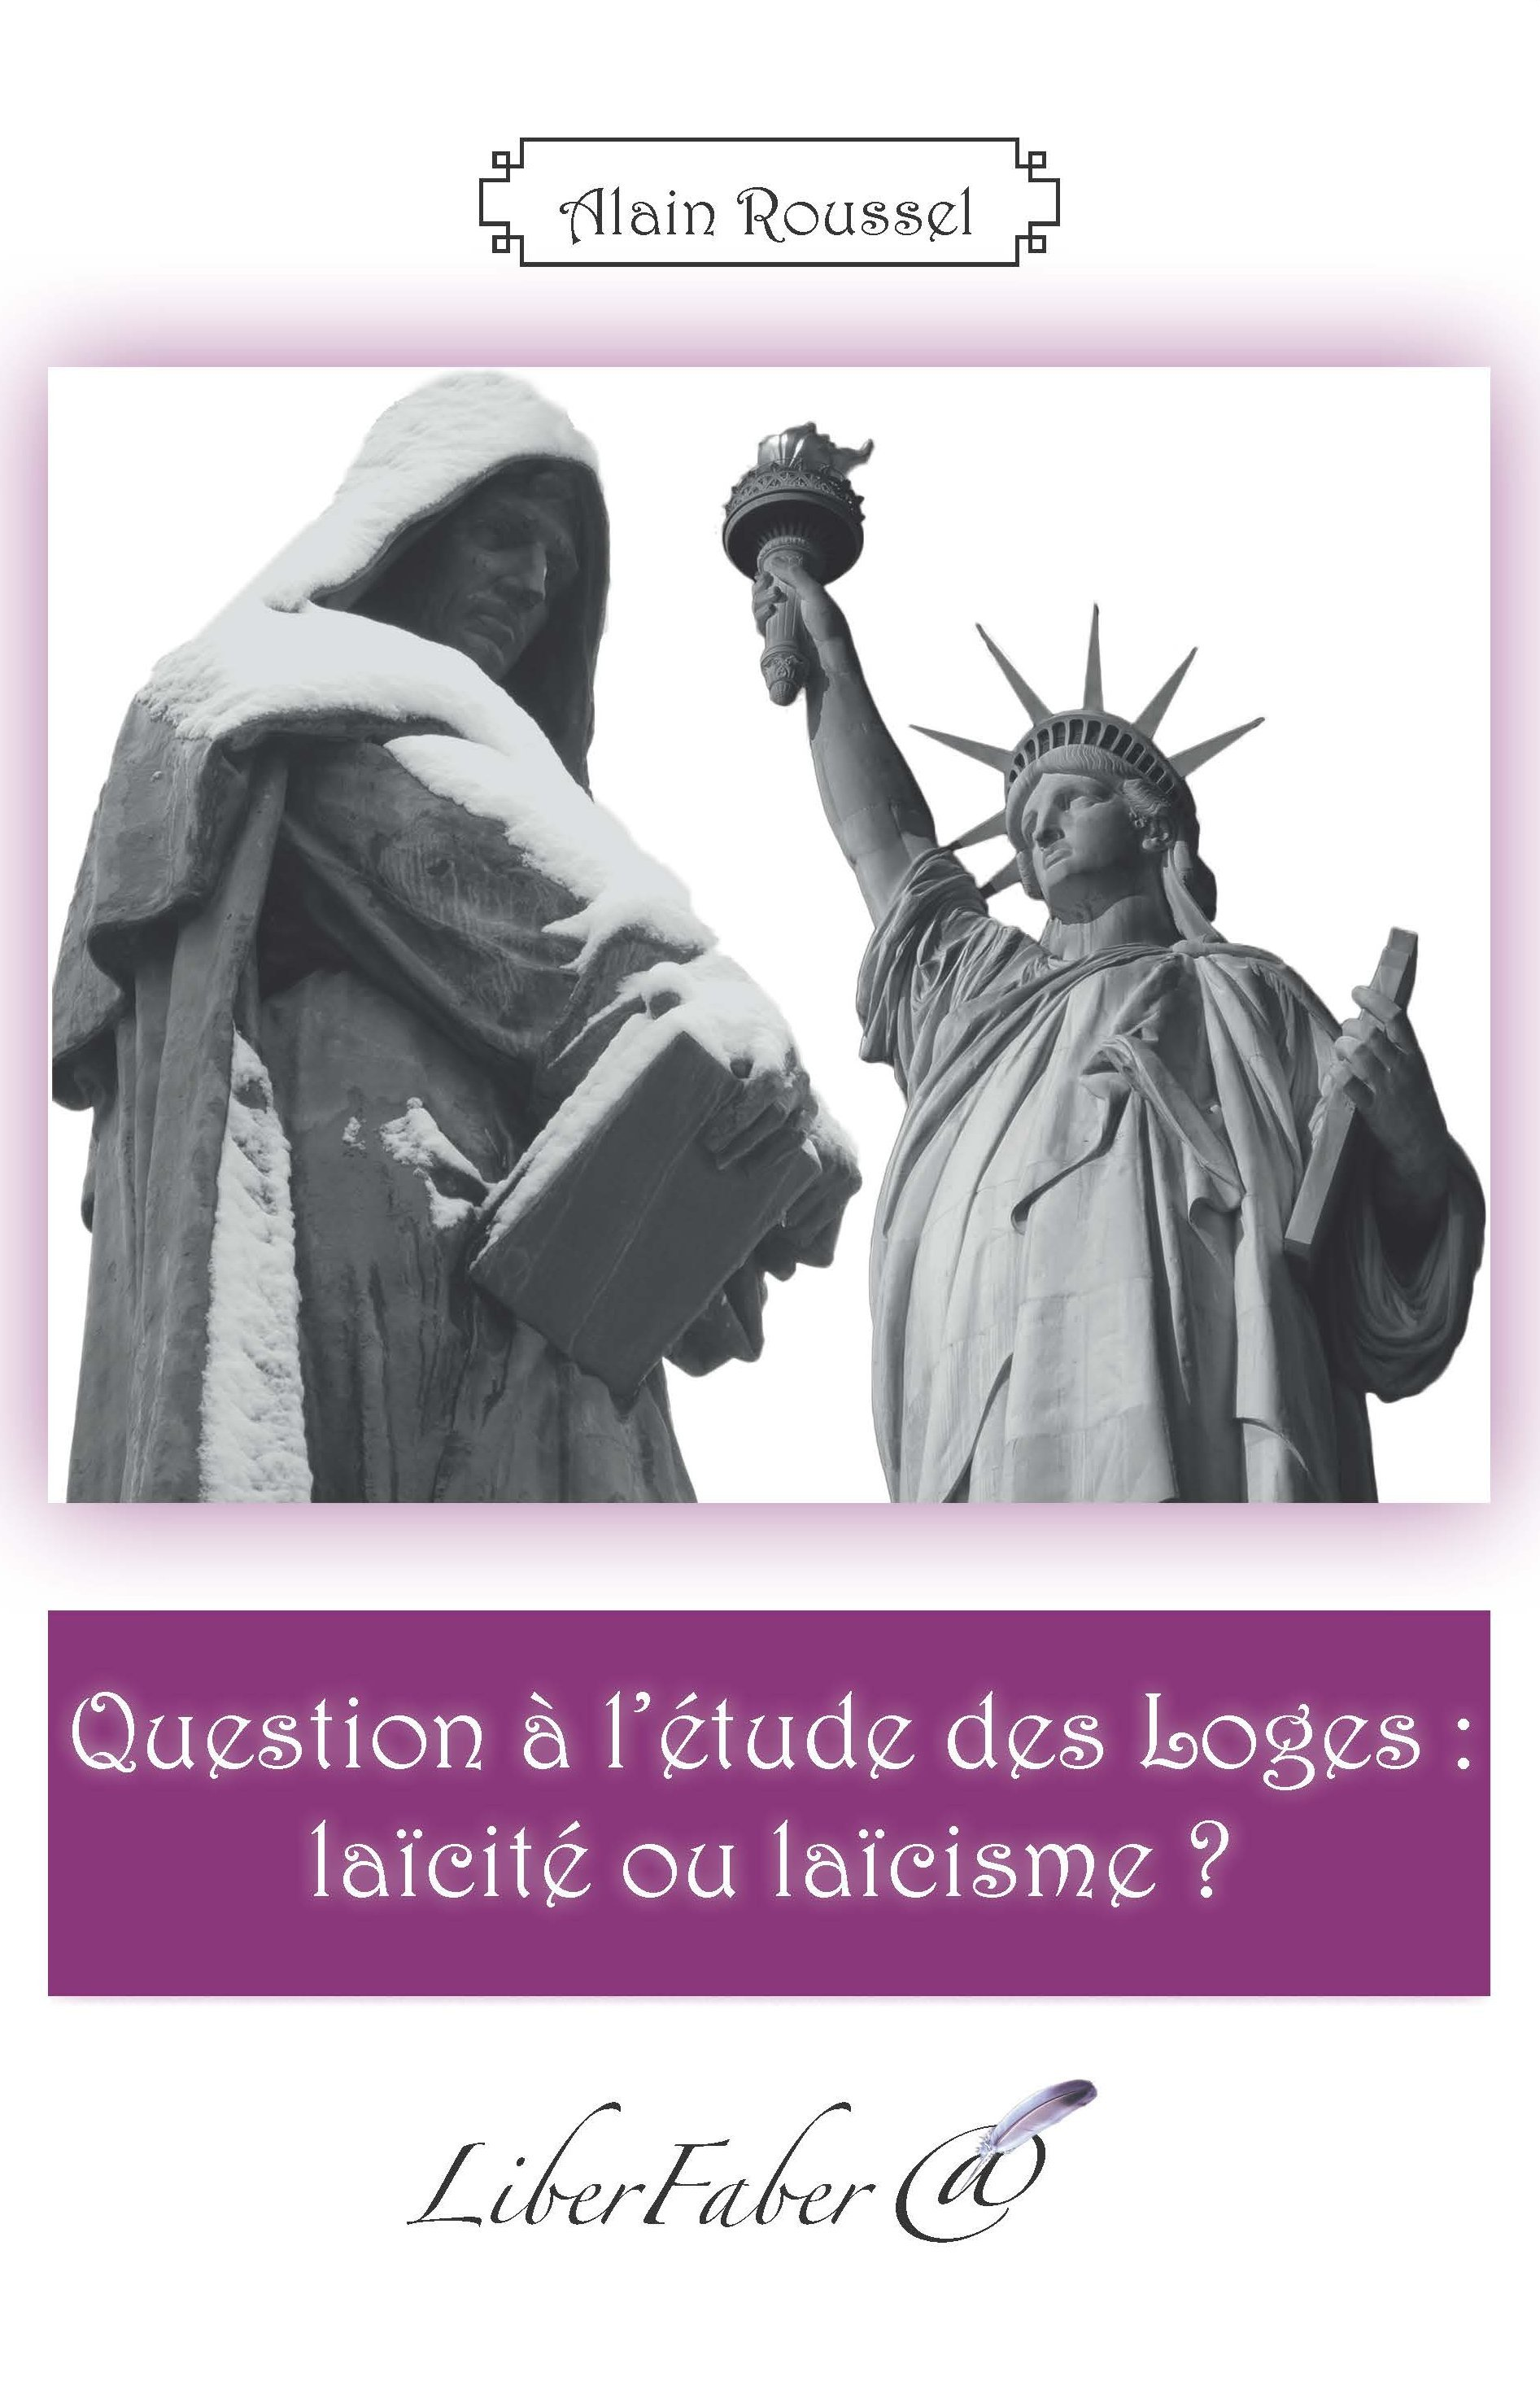 QUESTION A L'ETUDE DES LOGES : LAICITE OU LAICISME ?